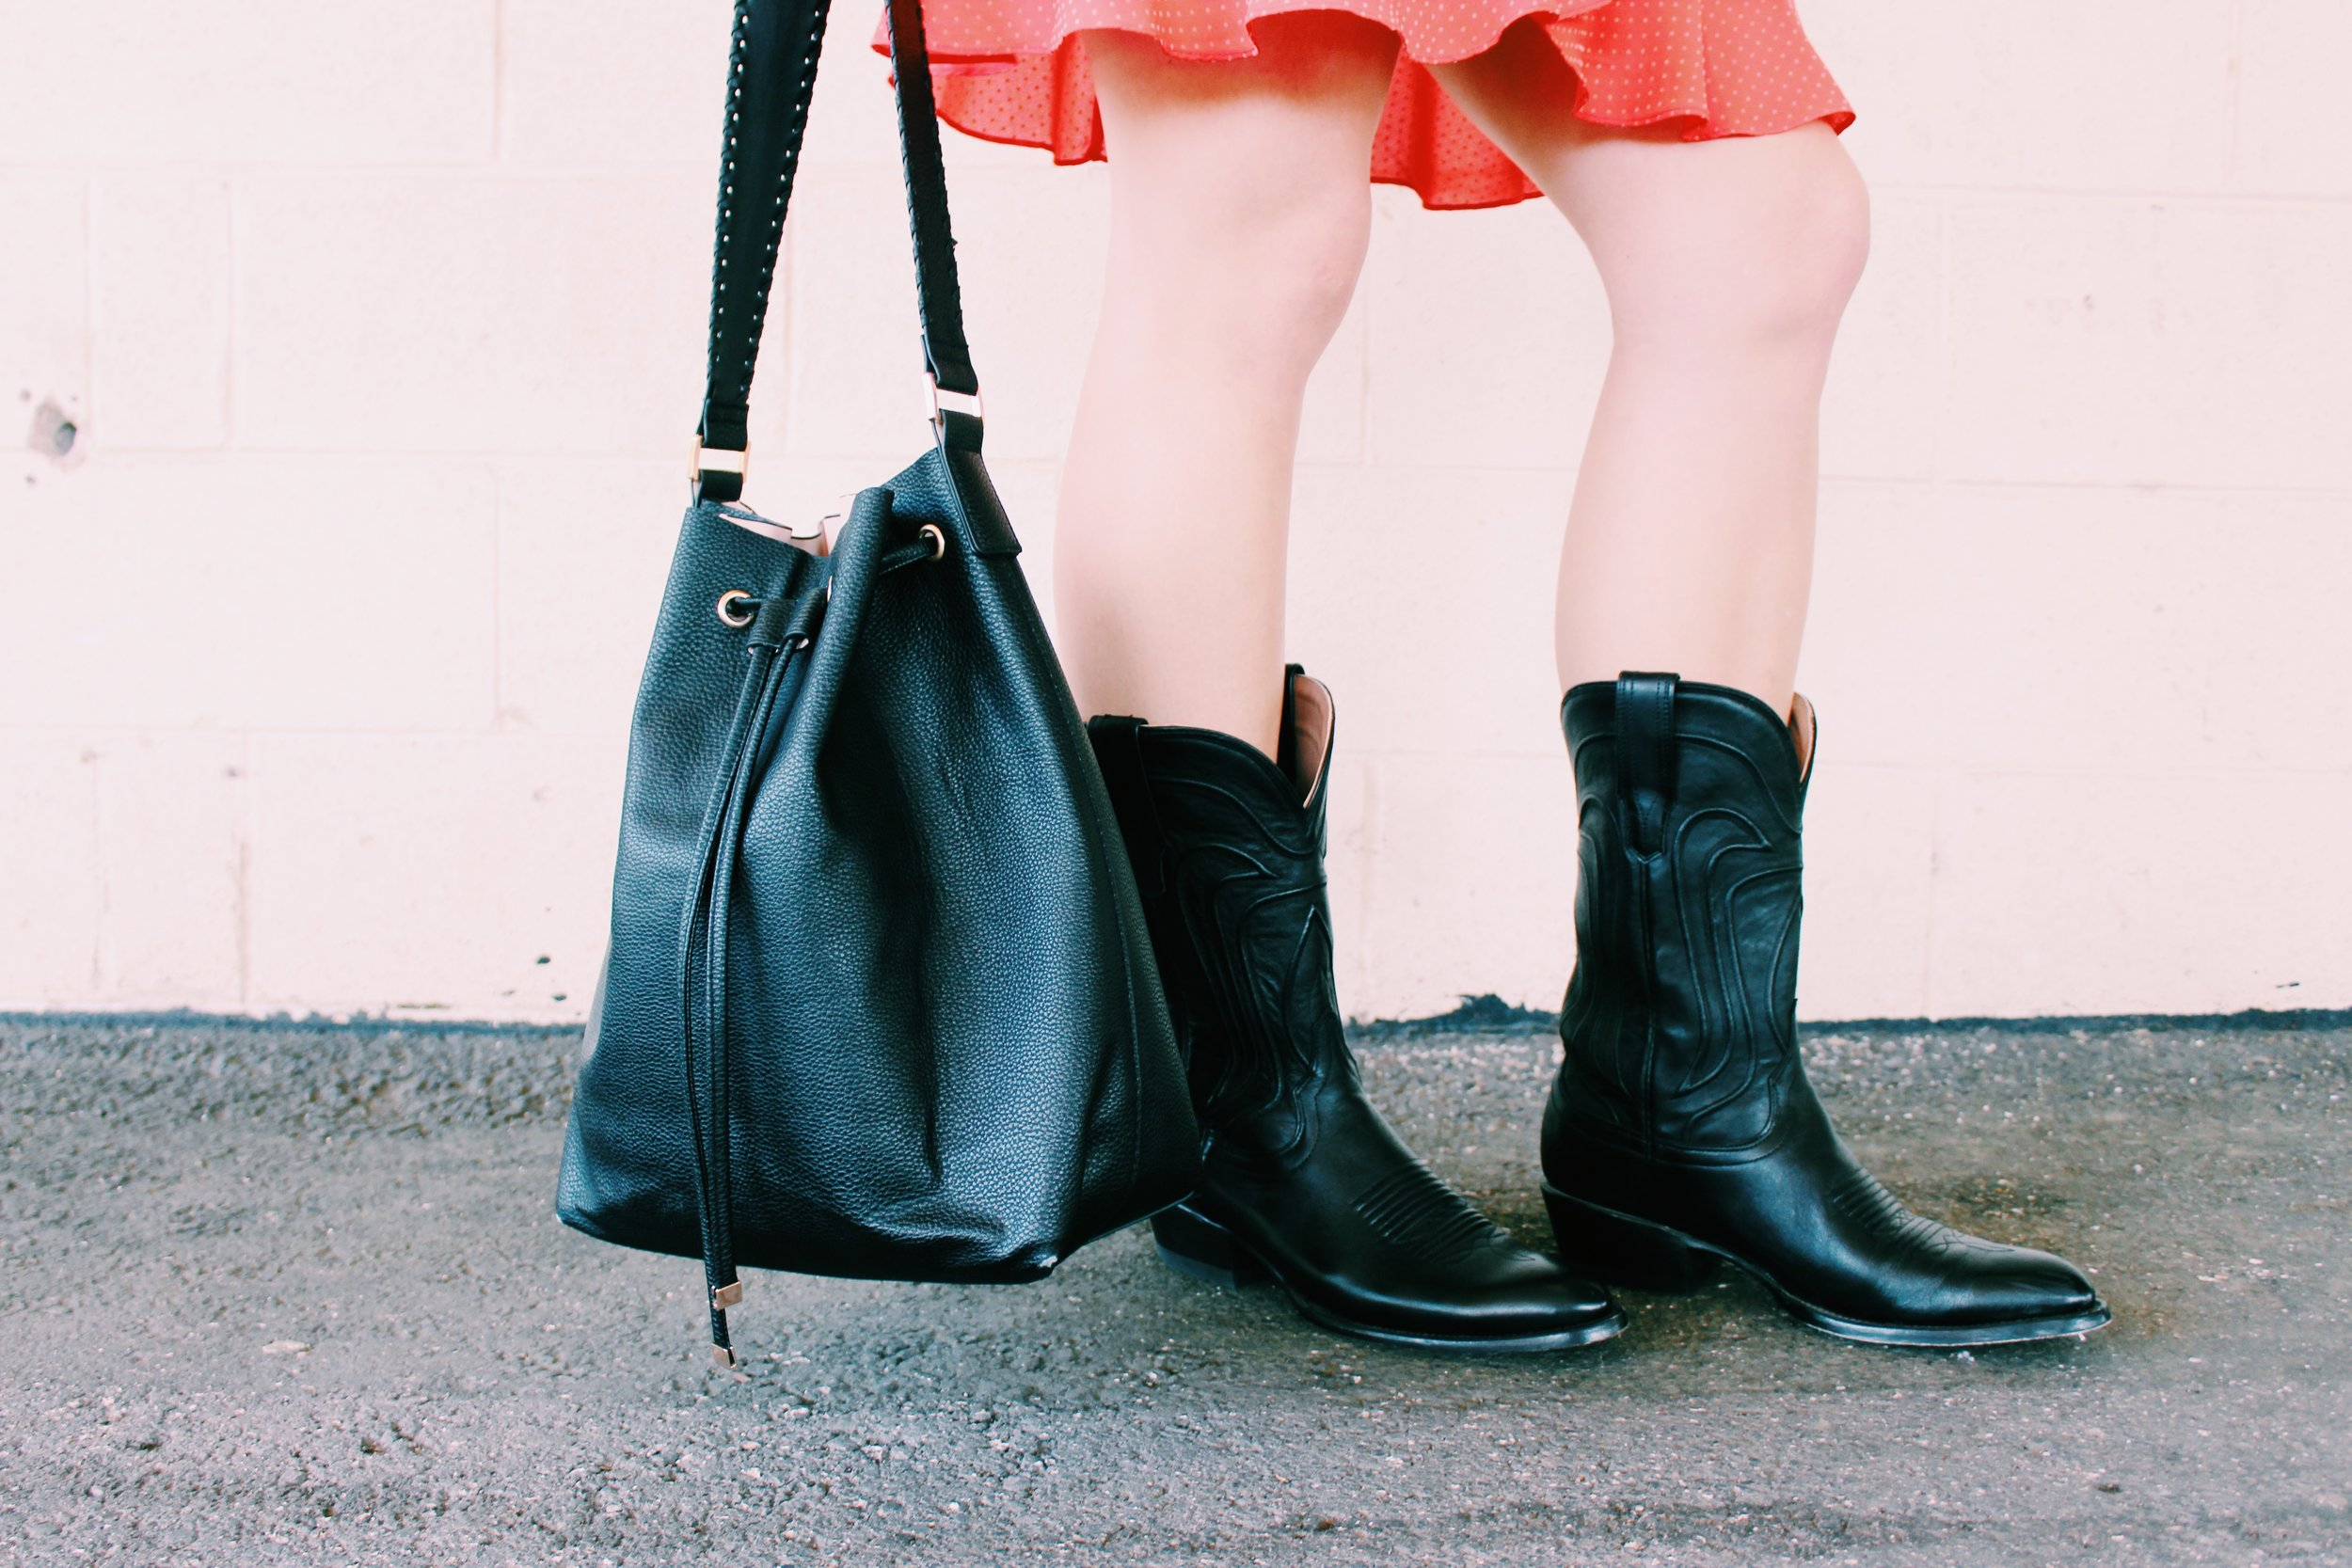 Greer Image Consulting - Blog - What to Wear to Brunch - Greer Guide to Style - Cowboy Boots - Black Bag